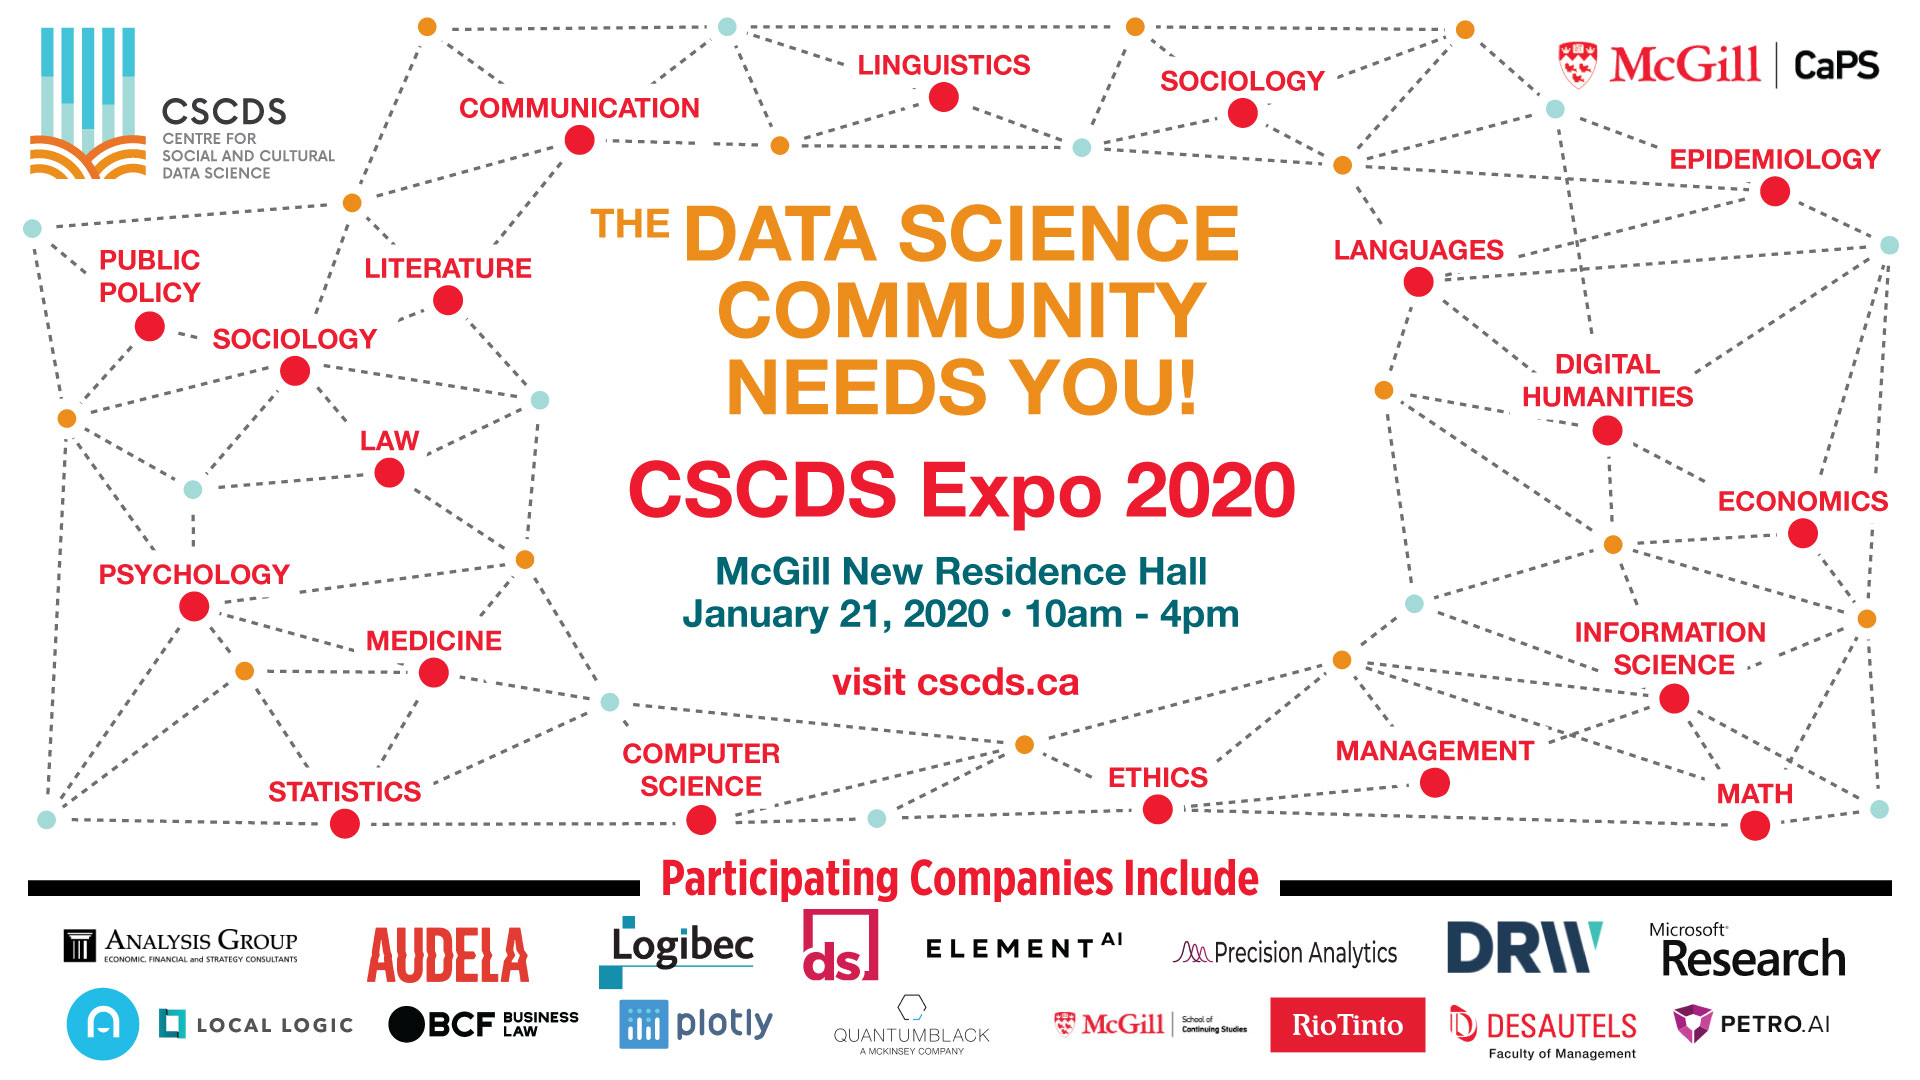 CSCDS Data Science Community Expo